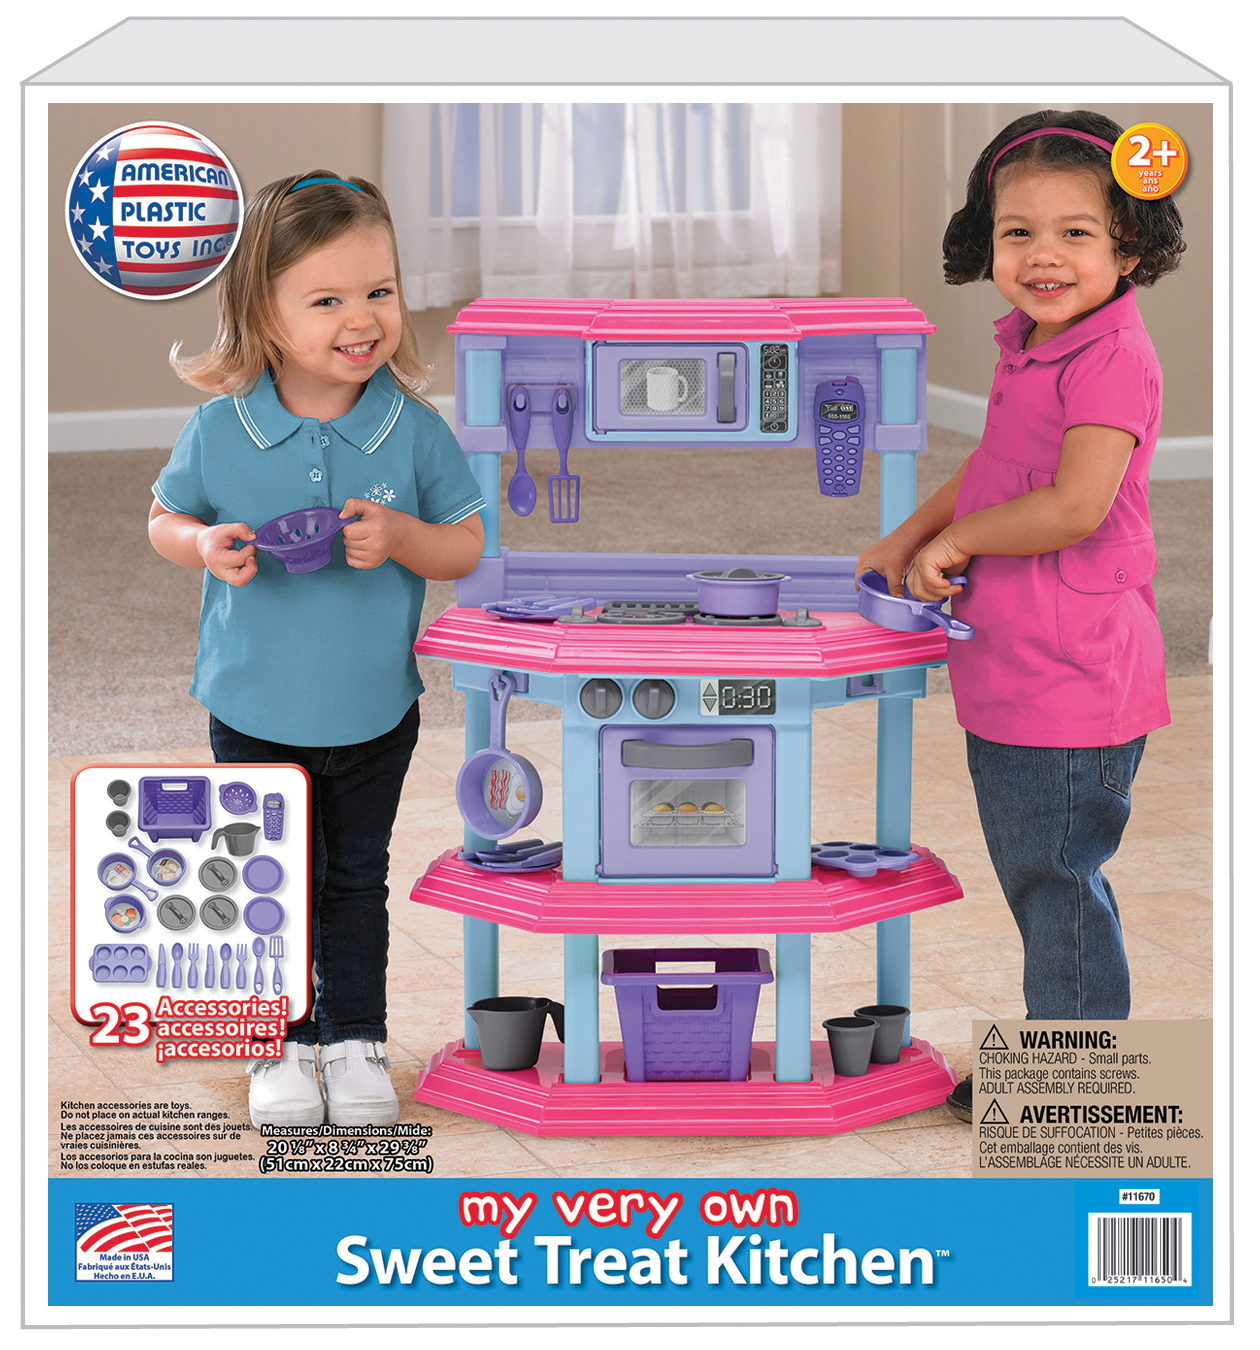 My Very Own Sweet Treat Kitchen - Walmart.com